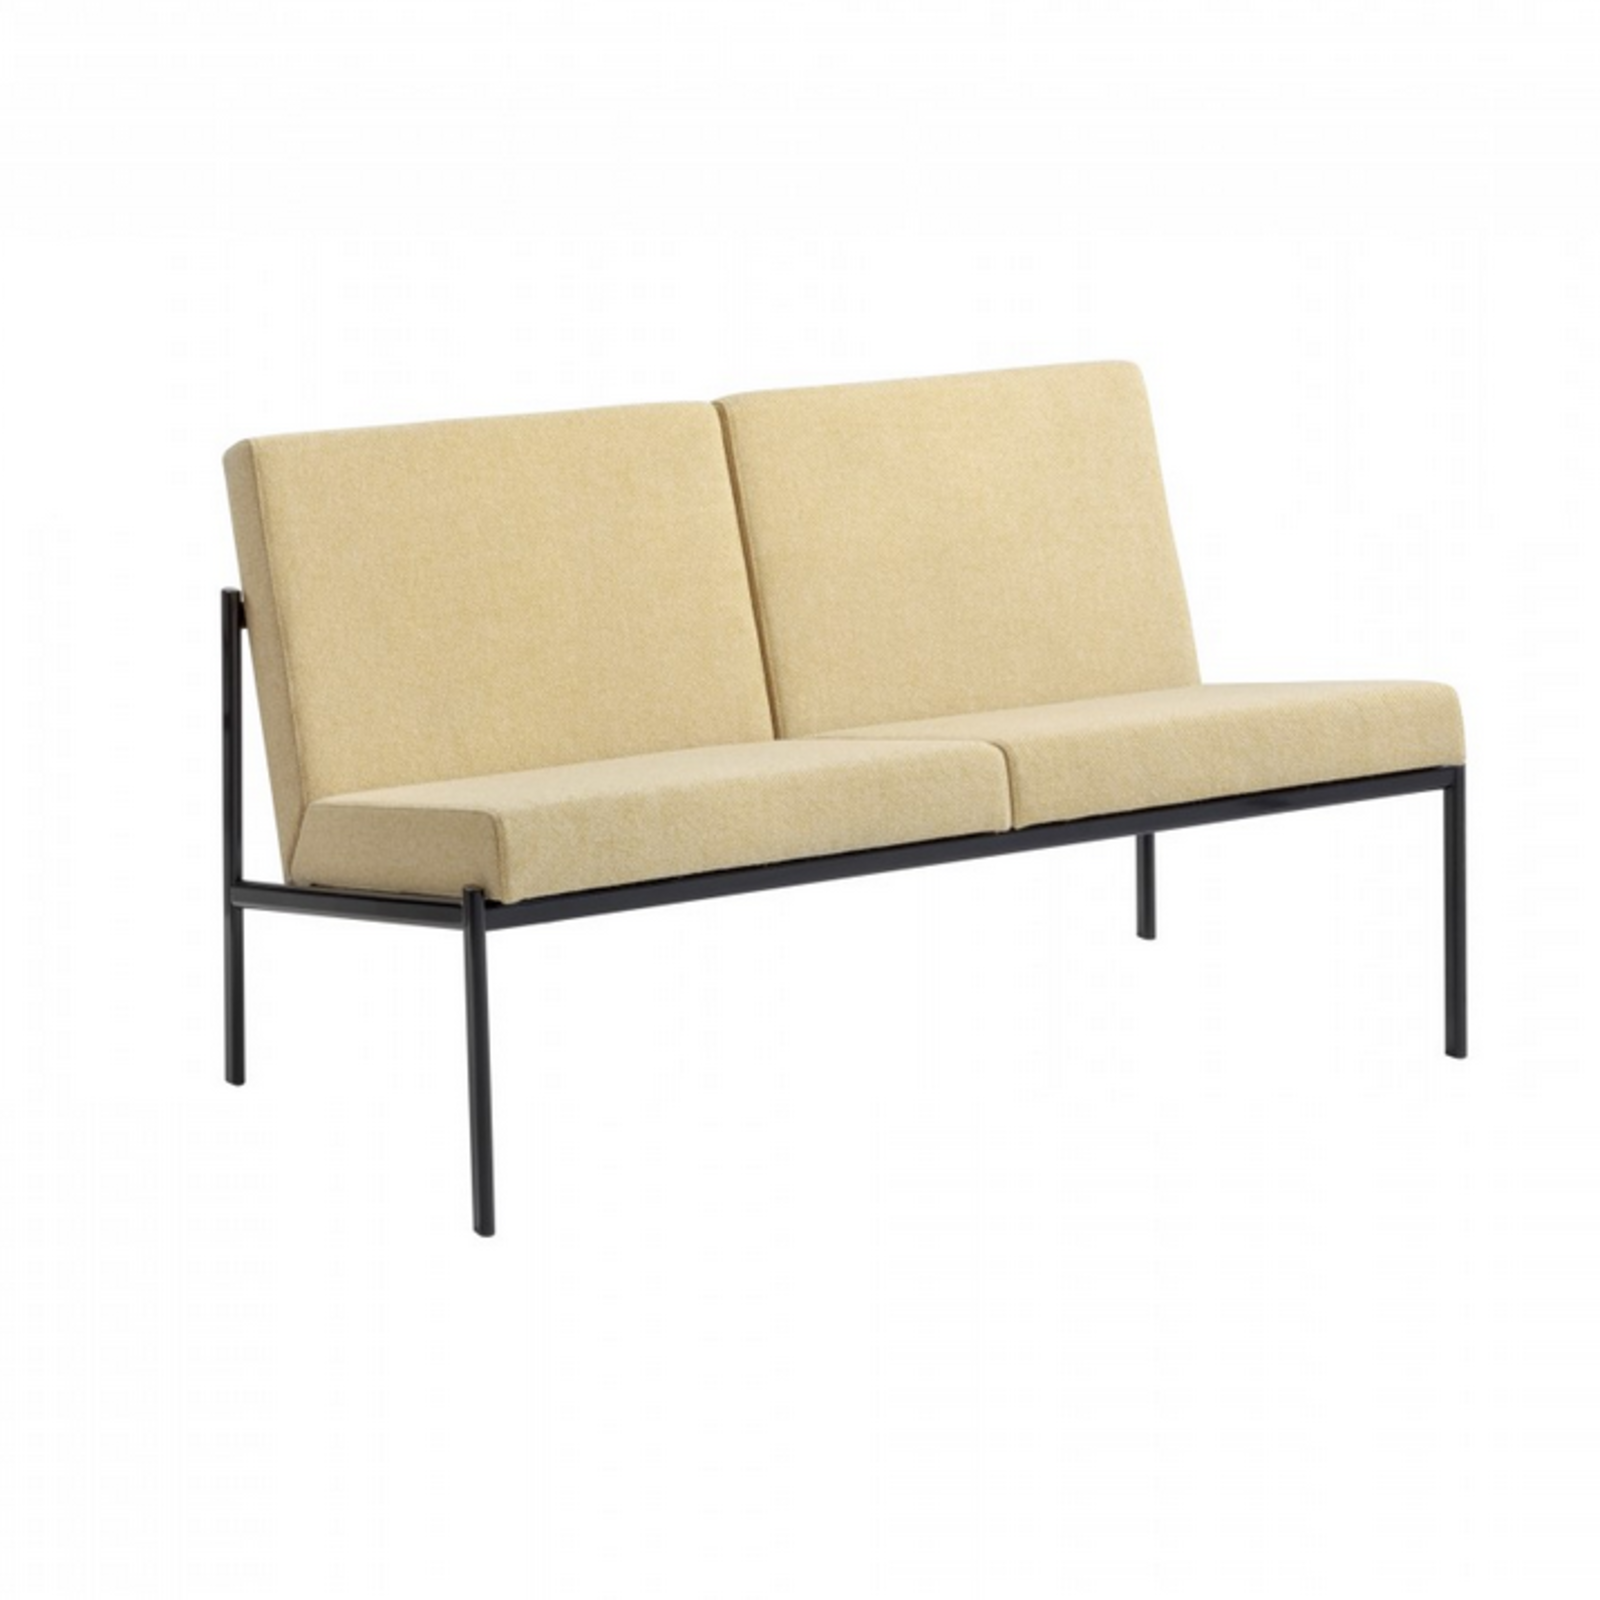 The Kiki two-seater sofa by Ilmari Tapiovaara for Artek will be featured in Austere's lounge space at Dwell on Design NY. The sofa, designed by a Finnish design great and manufactured by one of Finland's foremost furniture manufacturers, is covered in Hallingdal fabric made in Denmark.  Photo 2 of 6 in Austere: Scandinavian Super Store Comes to New York